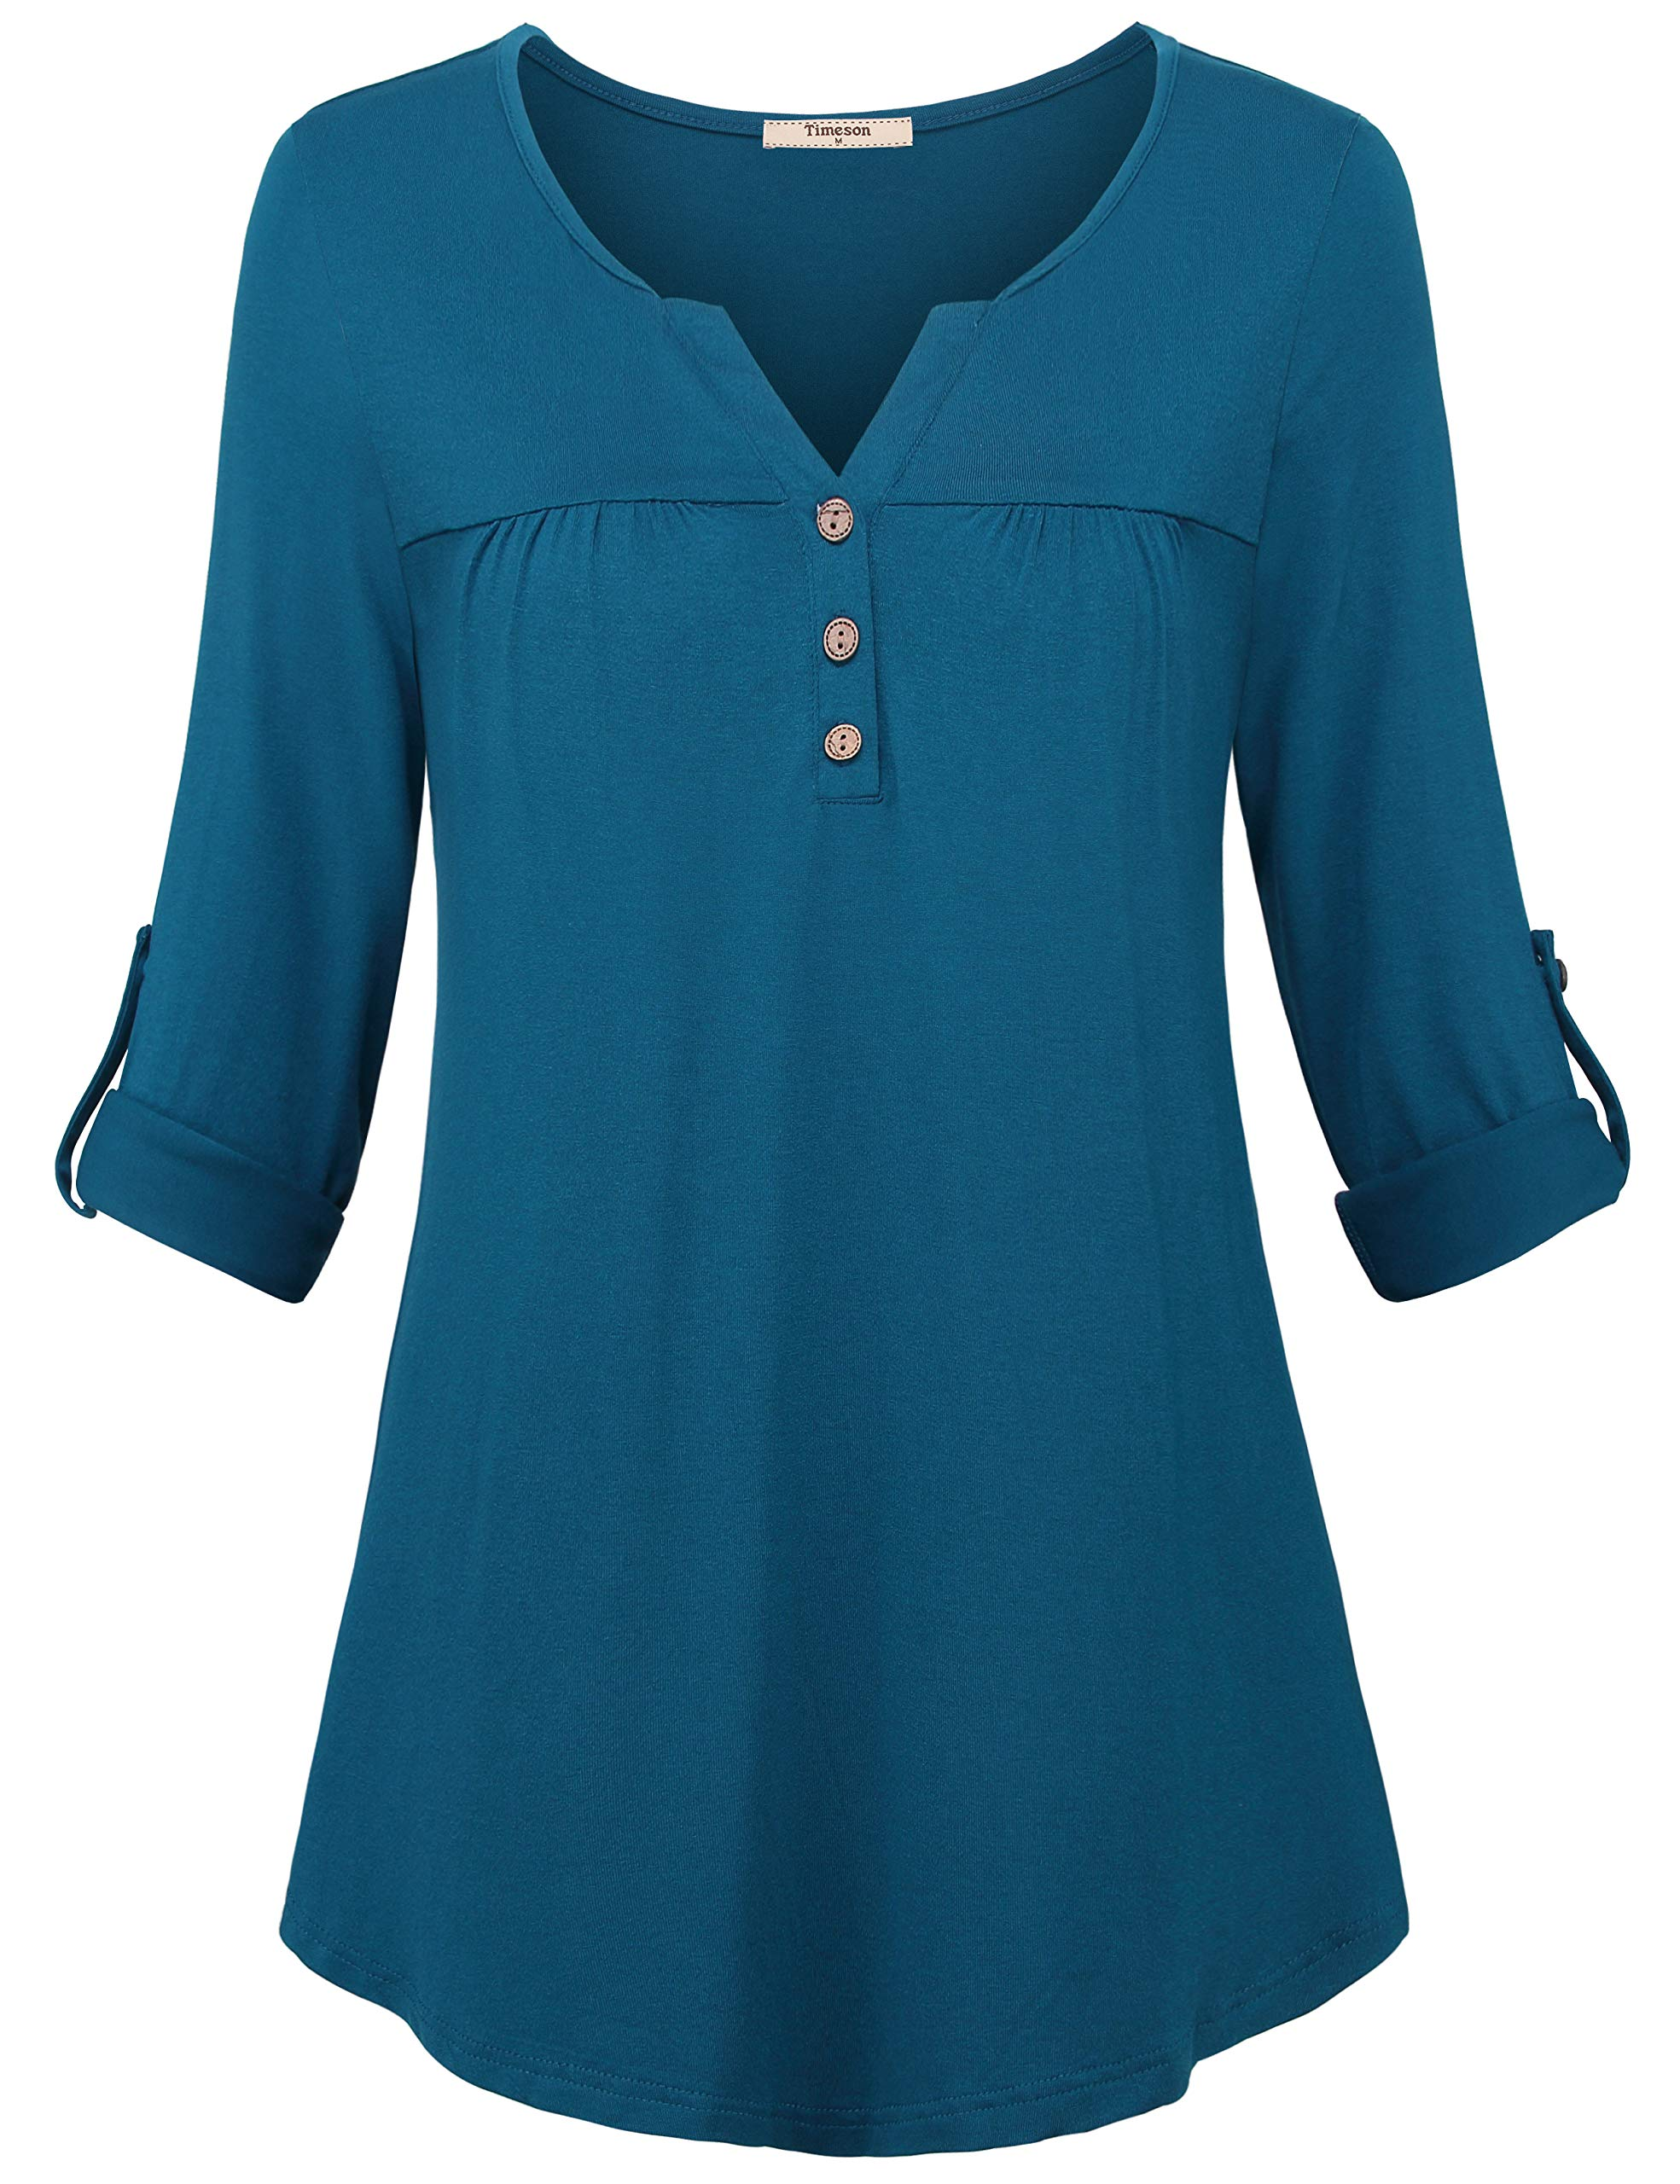 Timeson 3/4 Sleeve Tunic Tops, Women's Long Sleeve Tunics Shirts Henley V Neck Blouses A Line Fitted Dressy Tops to Wear with Leggings Cyan Medium